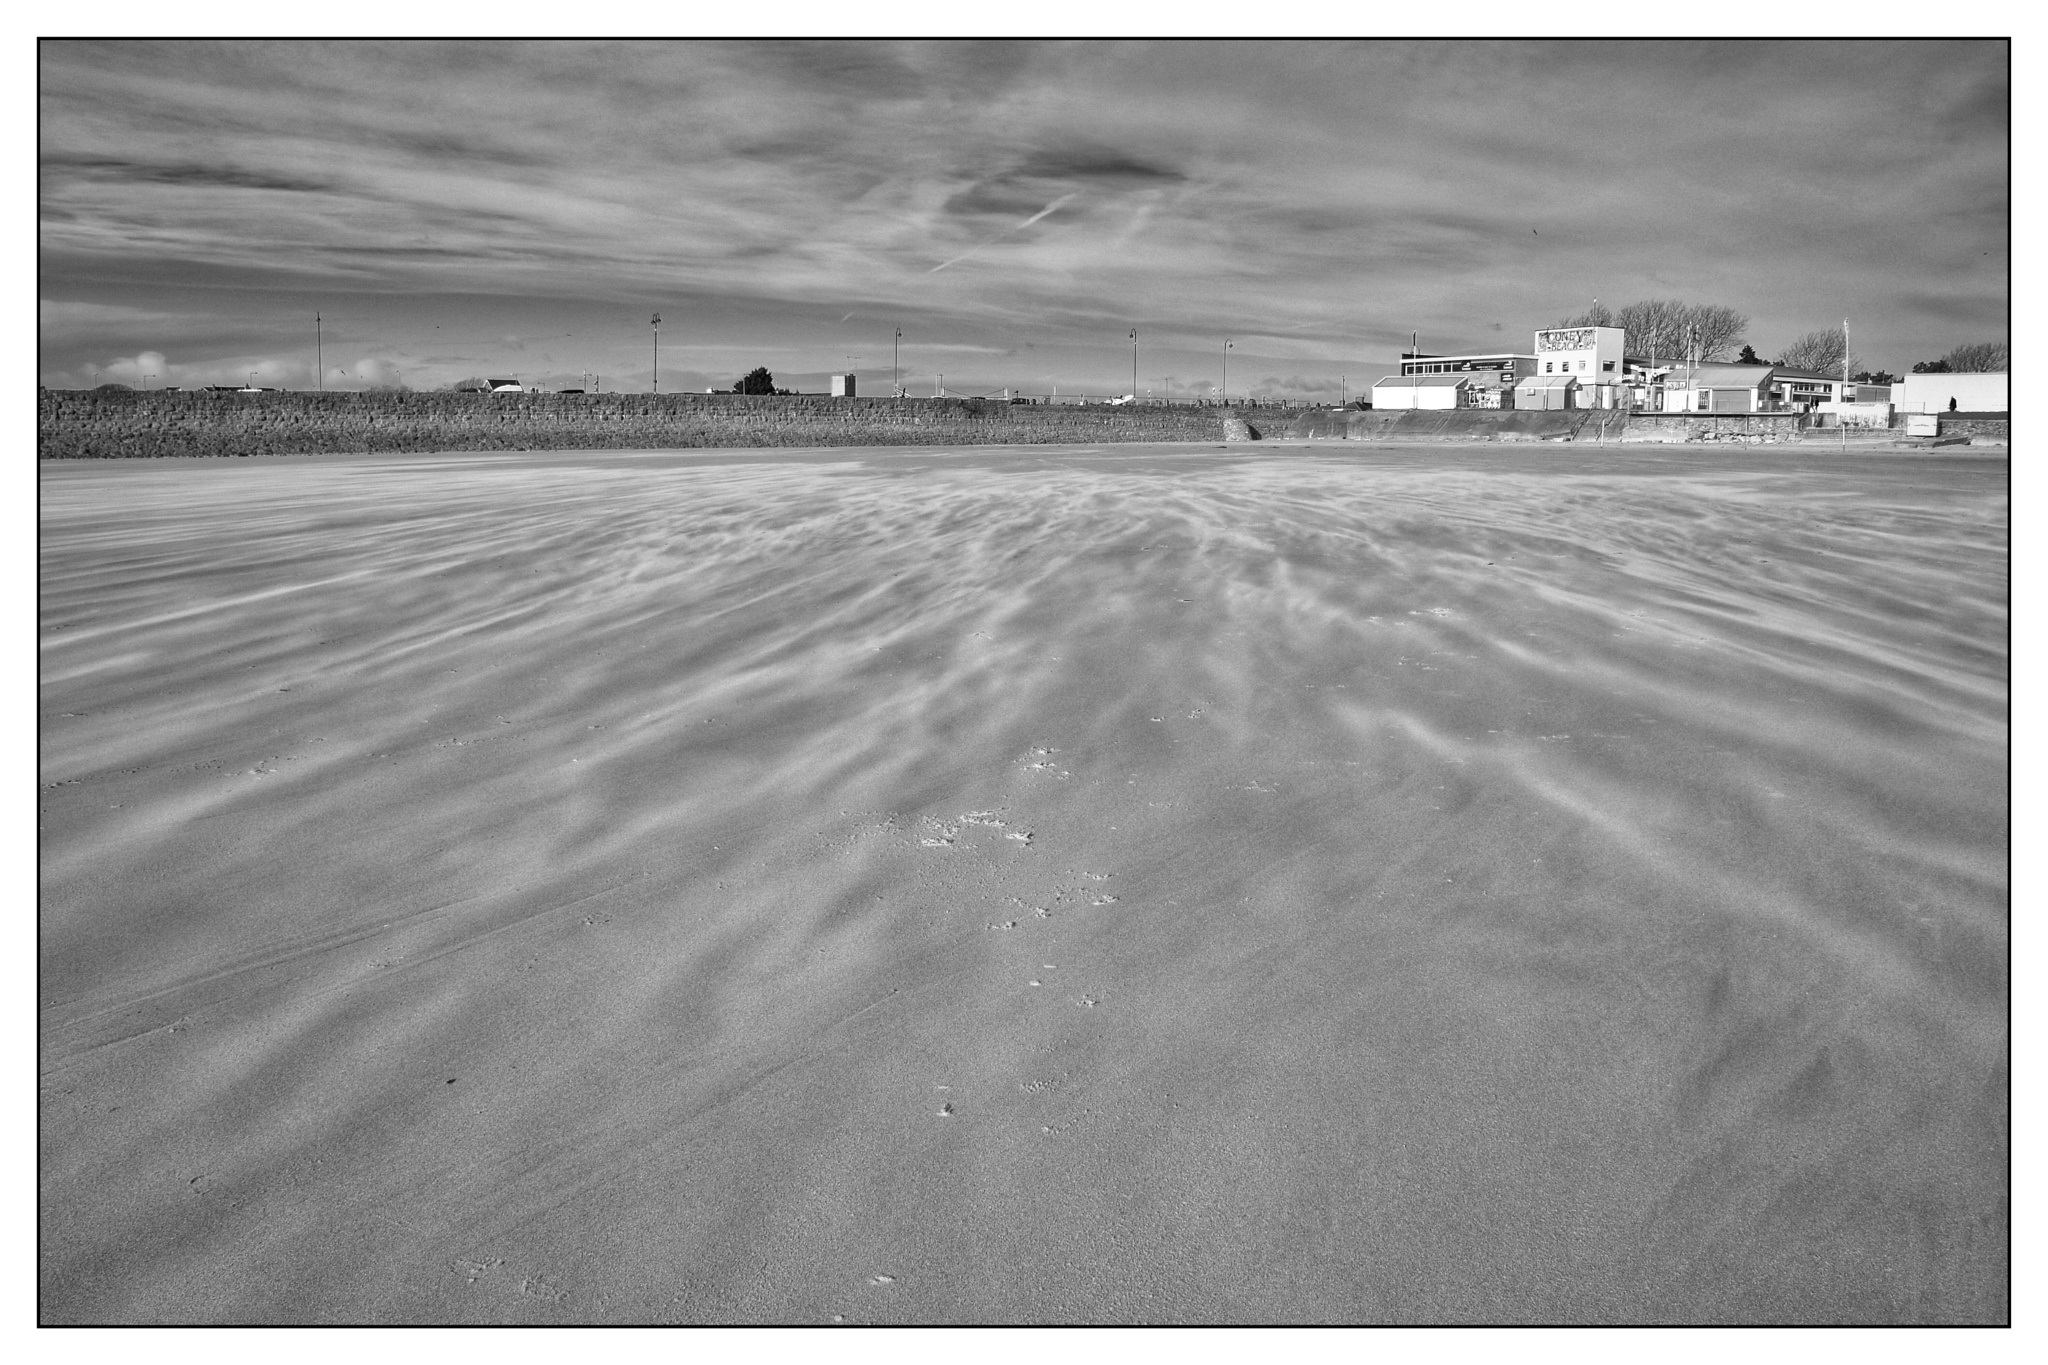 Shifting sands by darrendobbsphoto